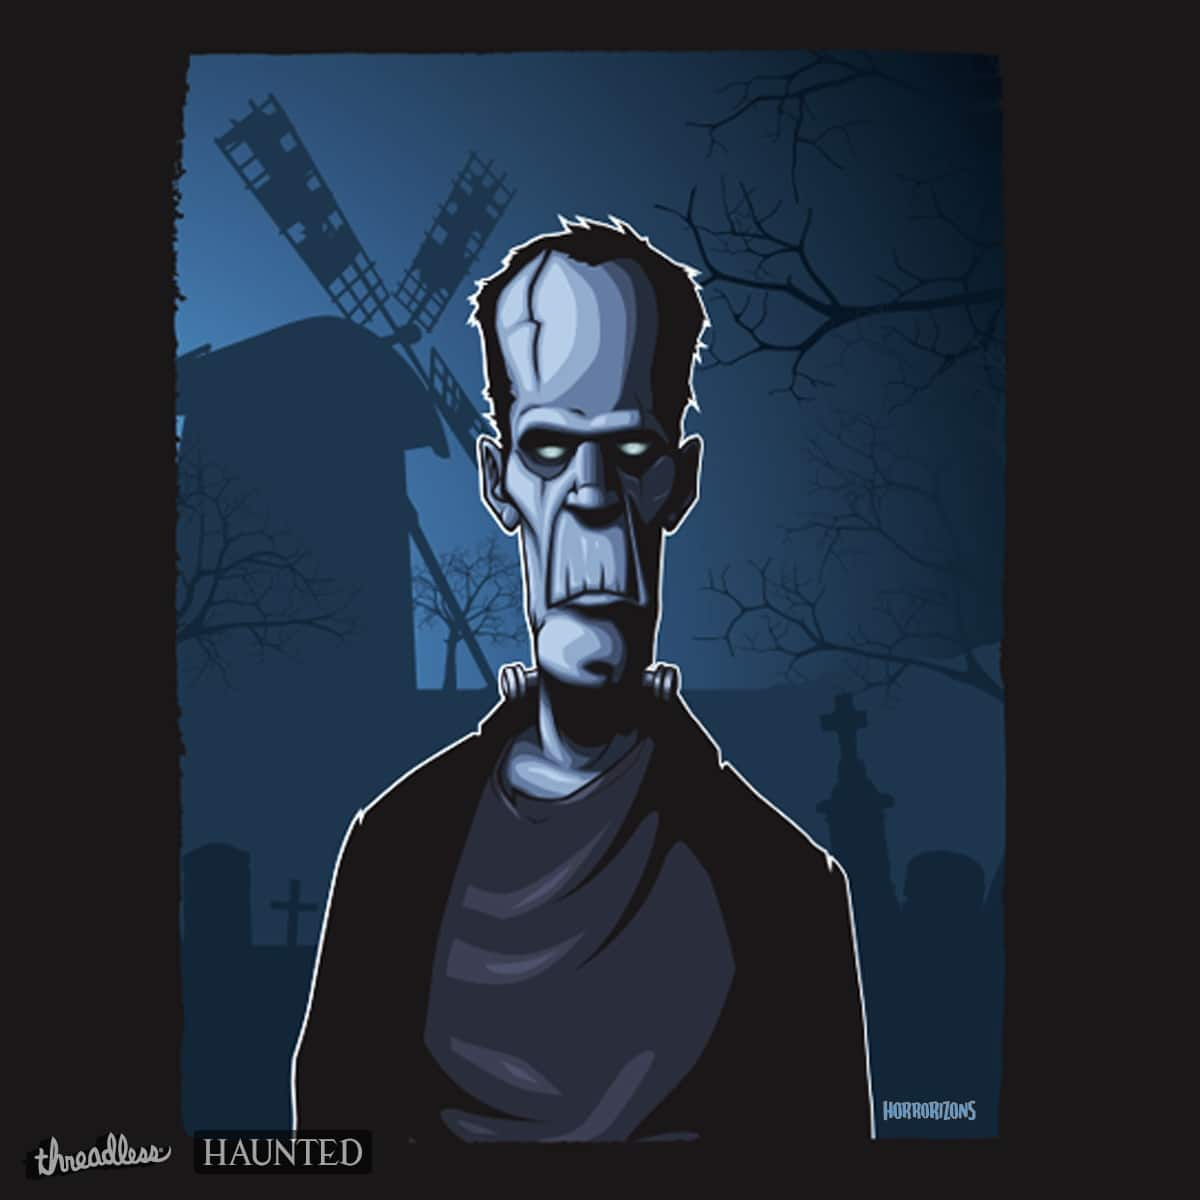 The Monster by Horrorizons on Threadless